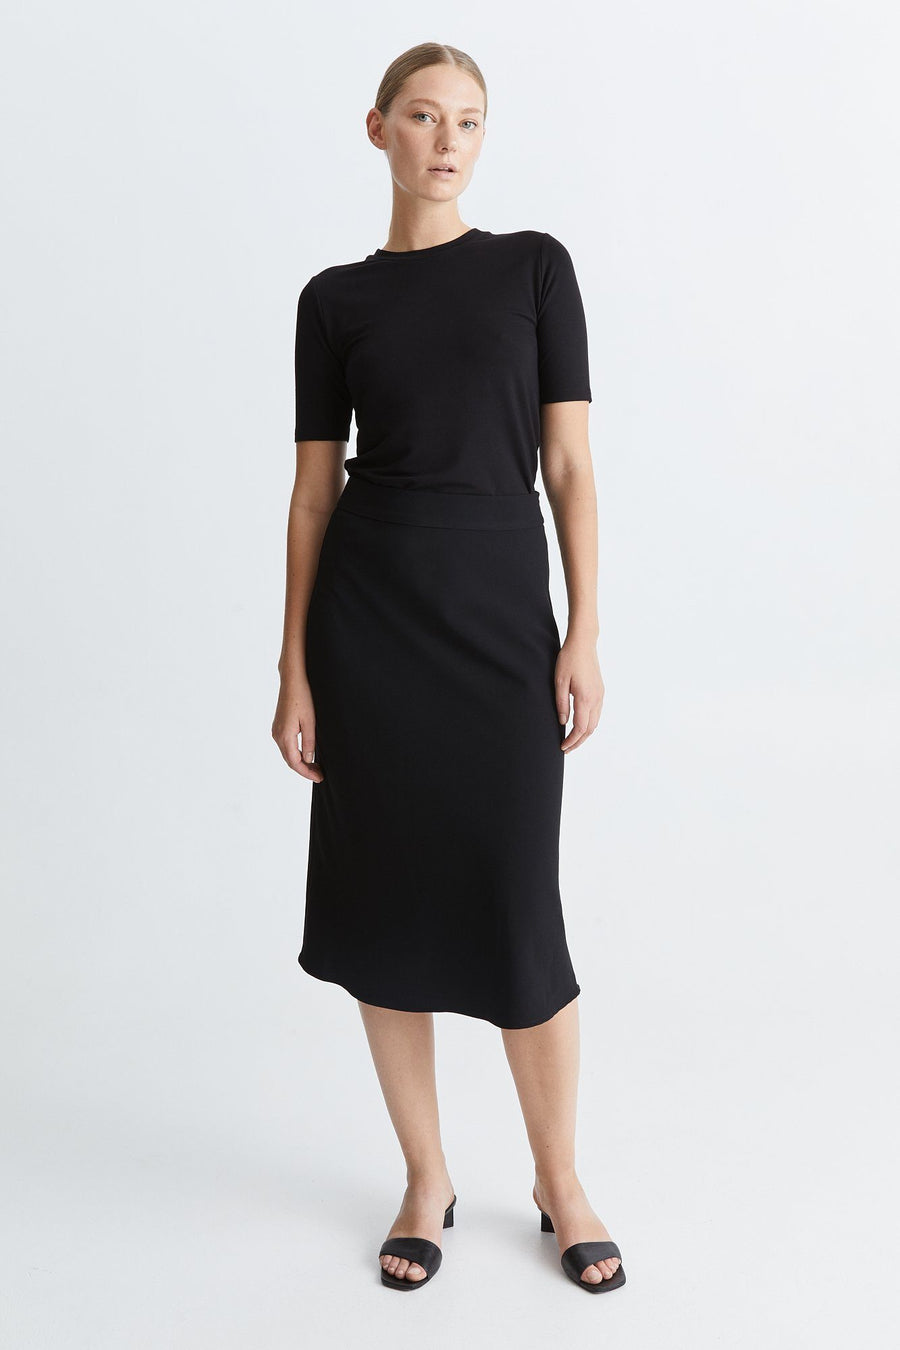 BRIDGE SKIRT - BLACK Skirt Stylein